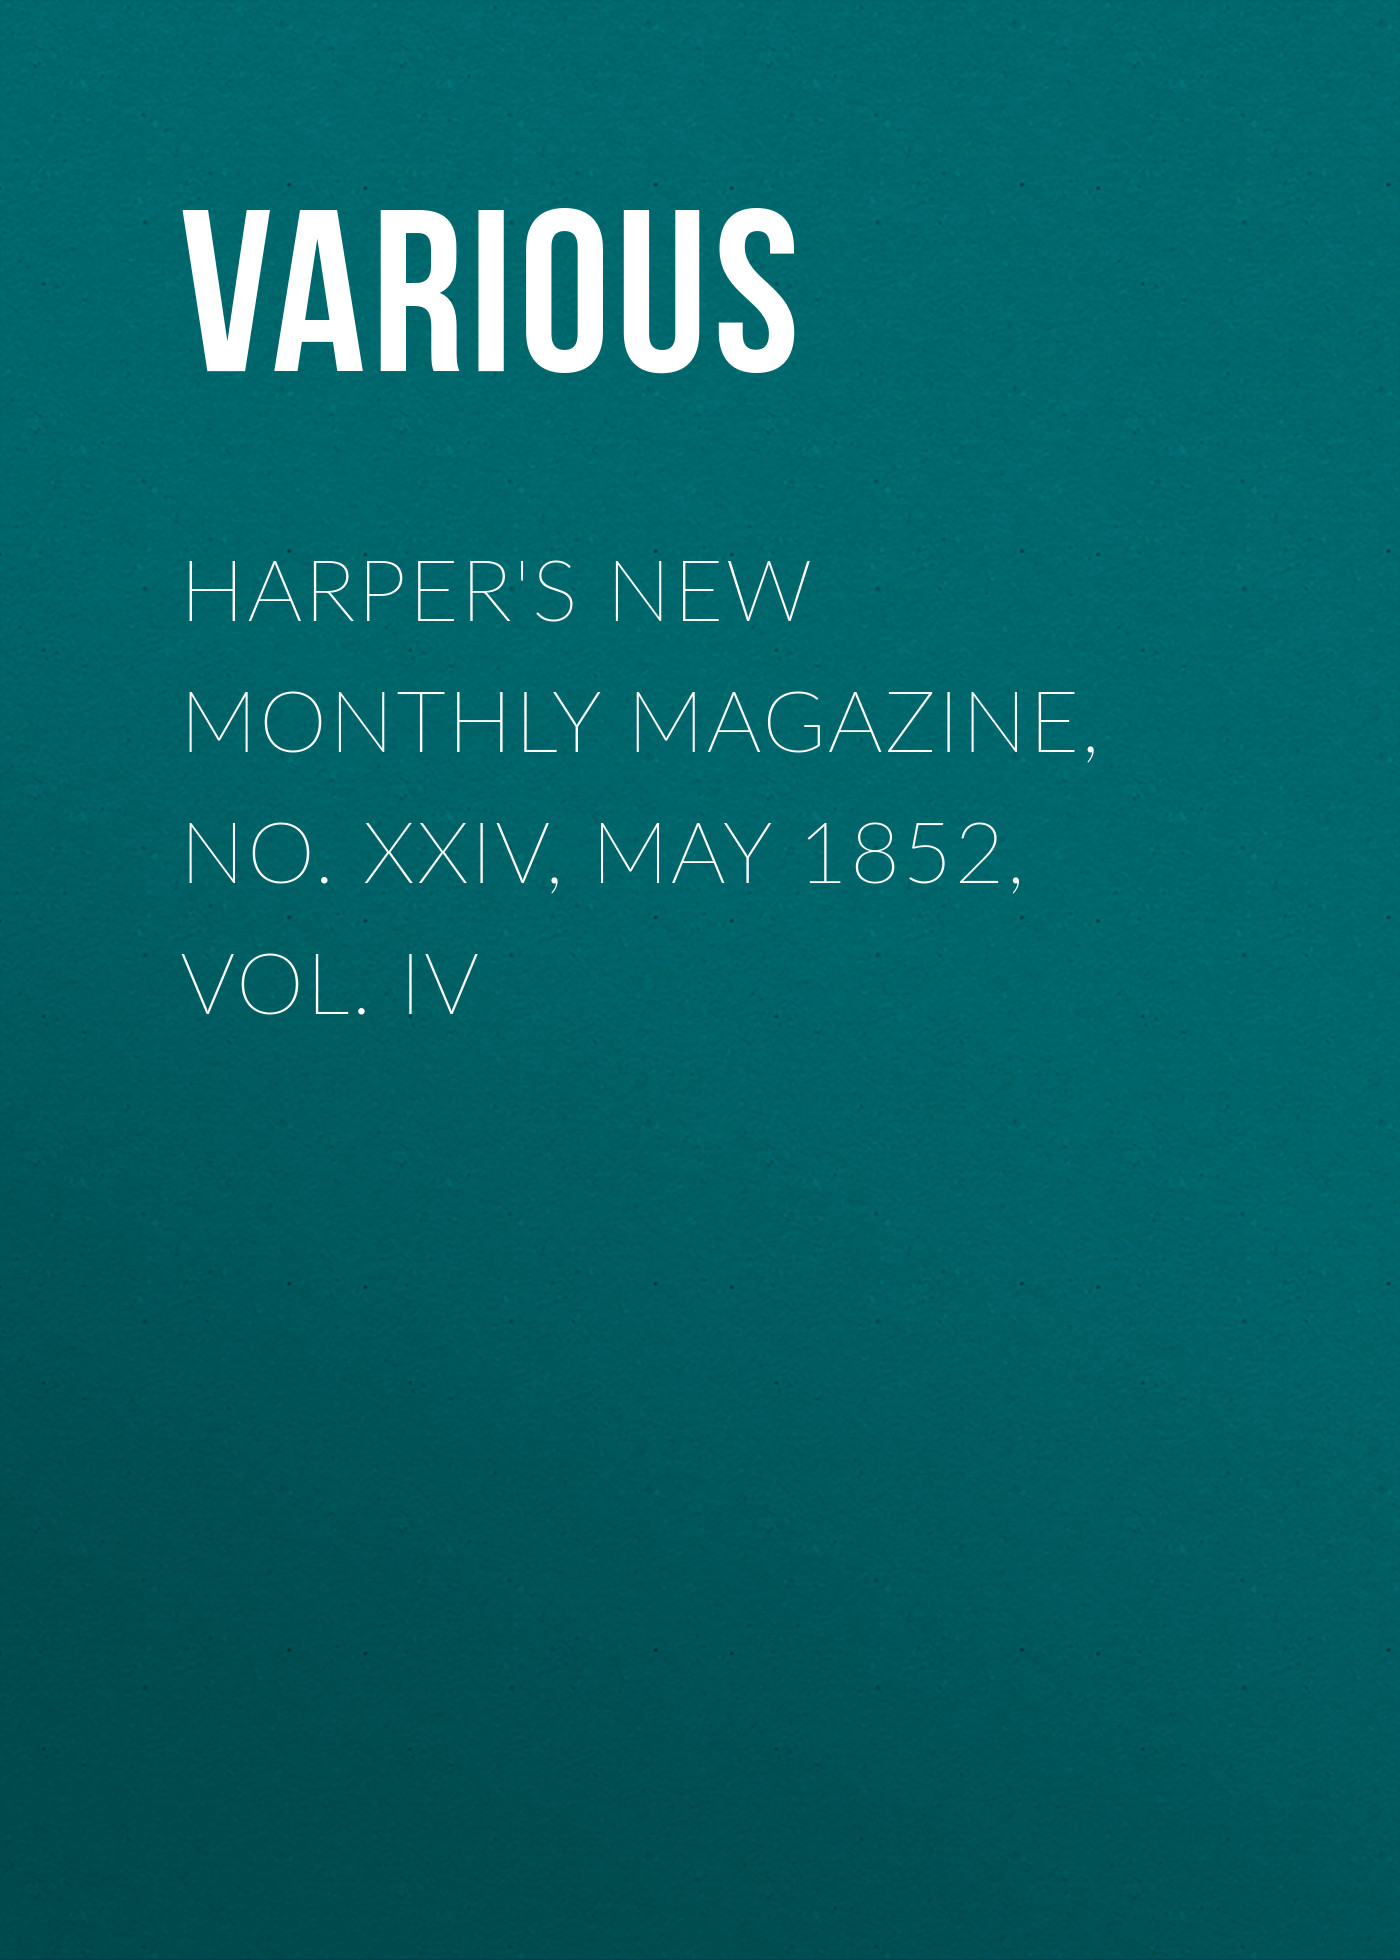 Фото - Various Harper's New Monthly Magazine, No. XXIV, May 1852, Vol. IV various harper s new monthly magazine no xxiii april 1852 vol iv